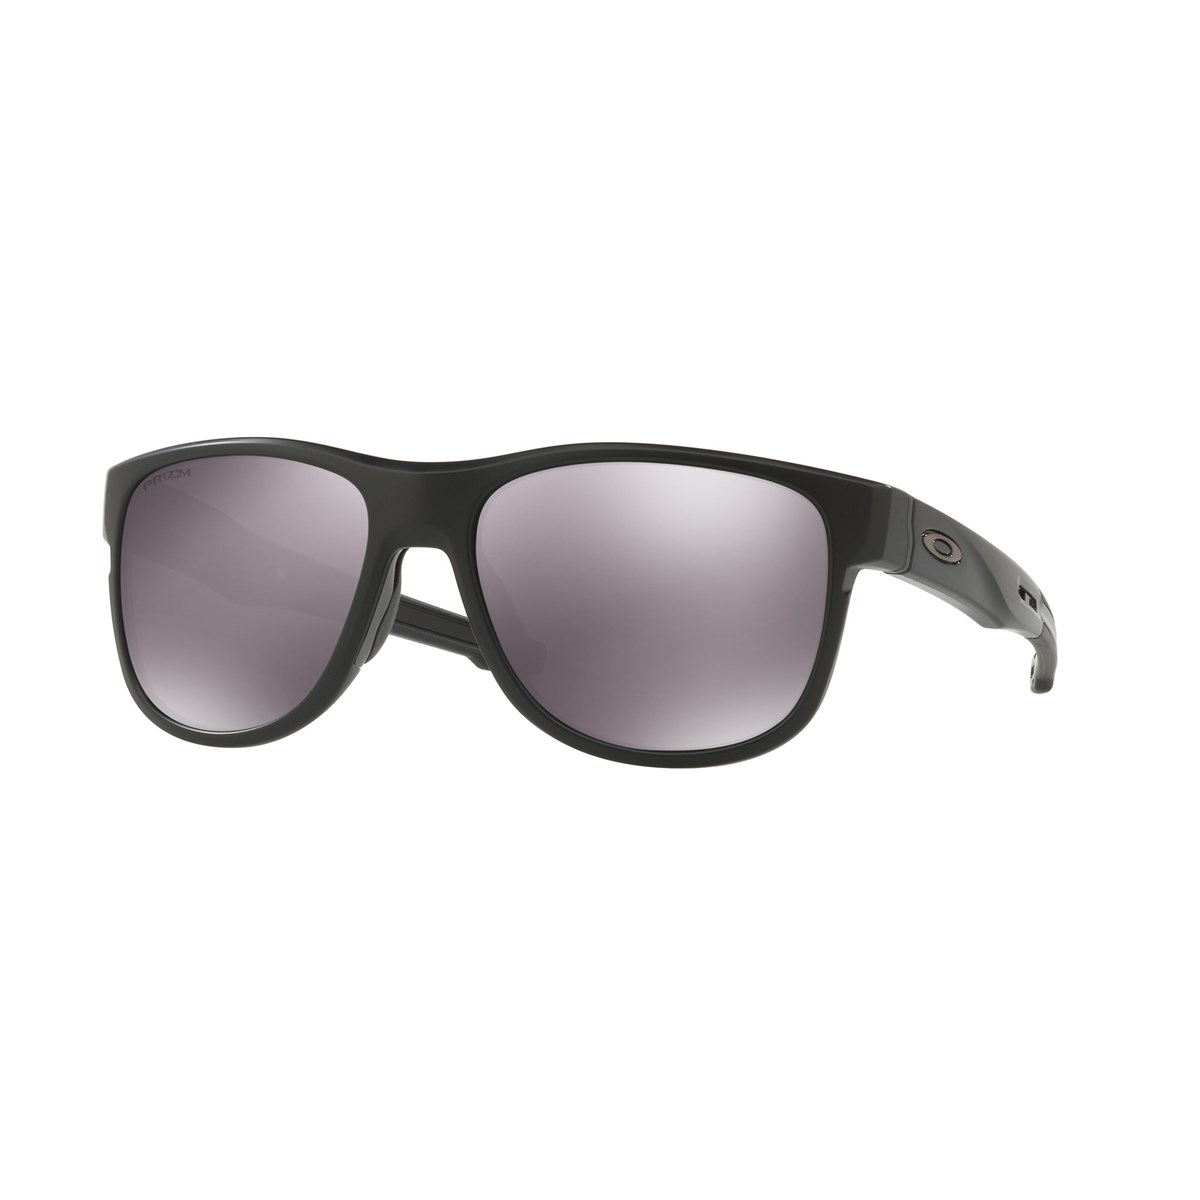 37e99d43a9a Oakley Crossrange R Sunglasses 2019 Matte Black Prizm Black. 0 (Be the  first to add a review!)